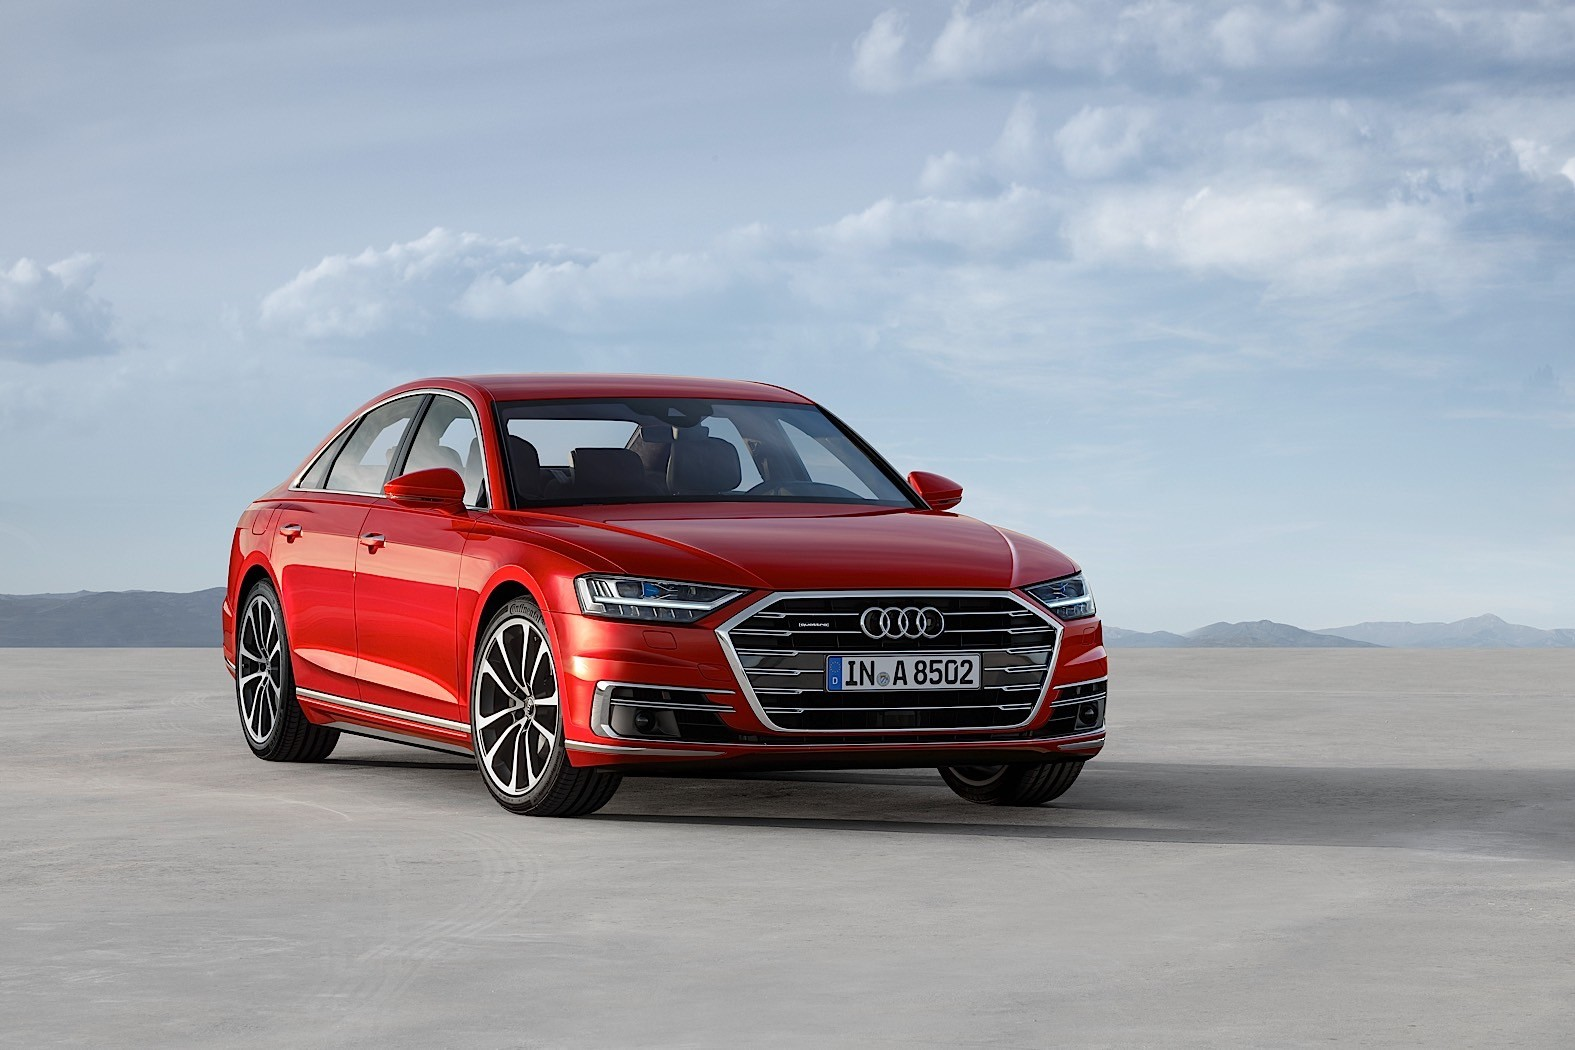 2018 Audi A8 D5 Unveiled: Plays Technology Card in Luxury ...